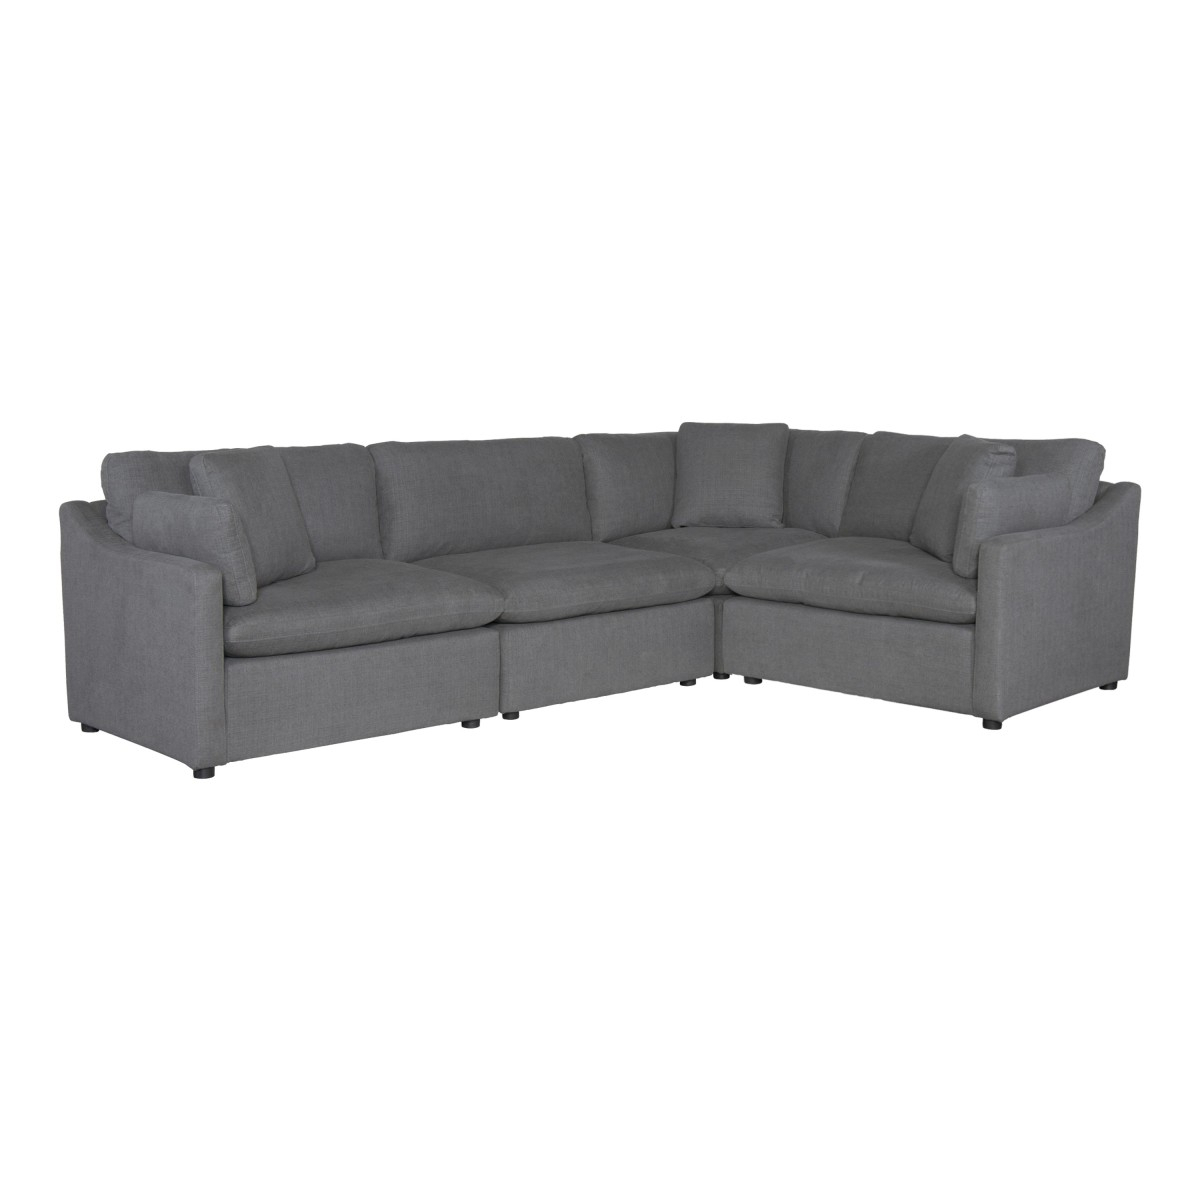 9544Gy*4Sc 4 Piece Modular Sectional For Benton 4 Piece Sectionals (View 10 of 15)